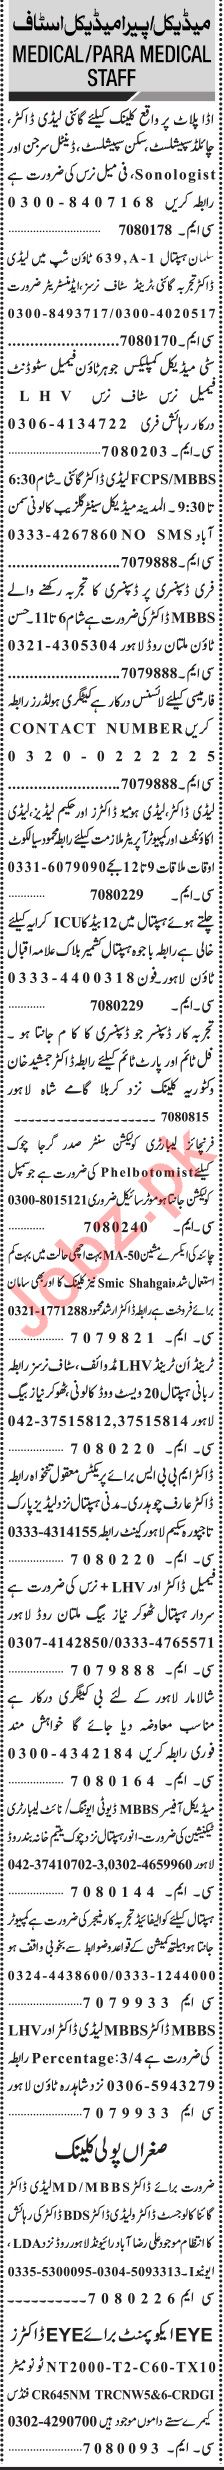 Jang Sunday Classified Ads 23rd Feb 2020 for Medical Staff